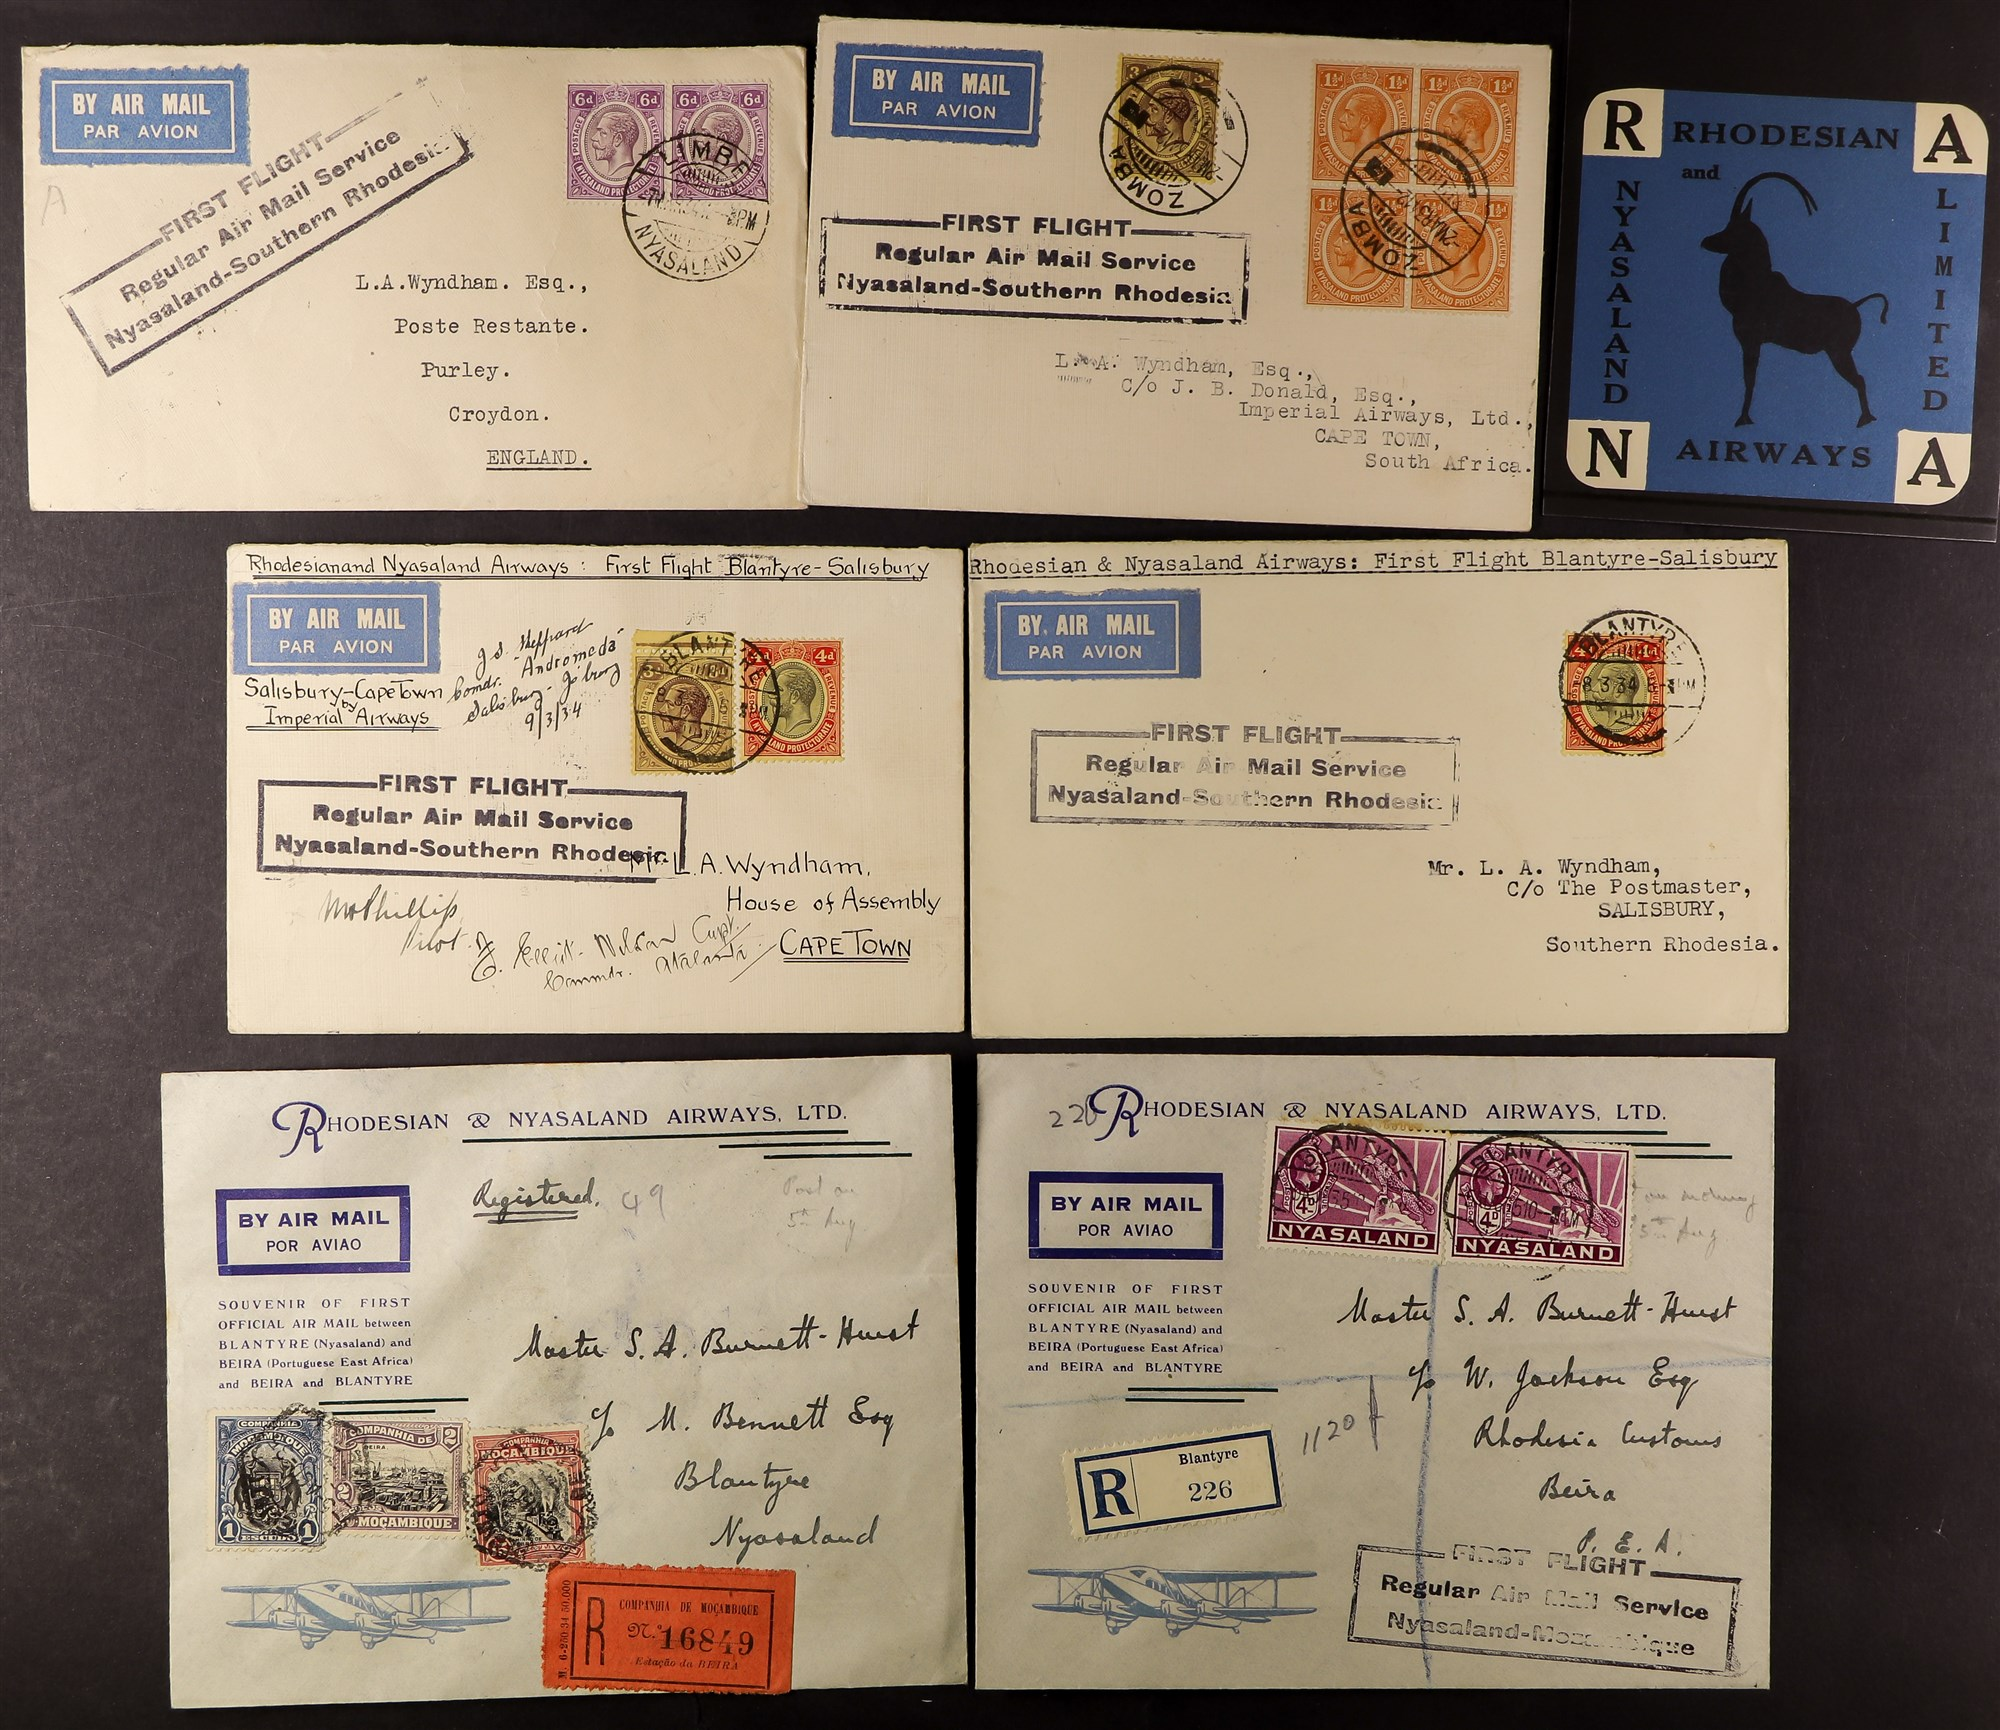 NYASALAND 1931-35 FLIGHT COVERS (March) cacheted covers for the First Flight Regular Air Mail